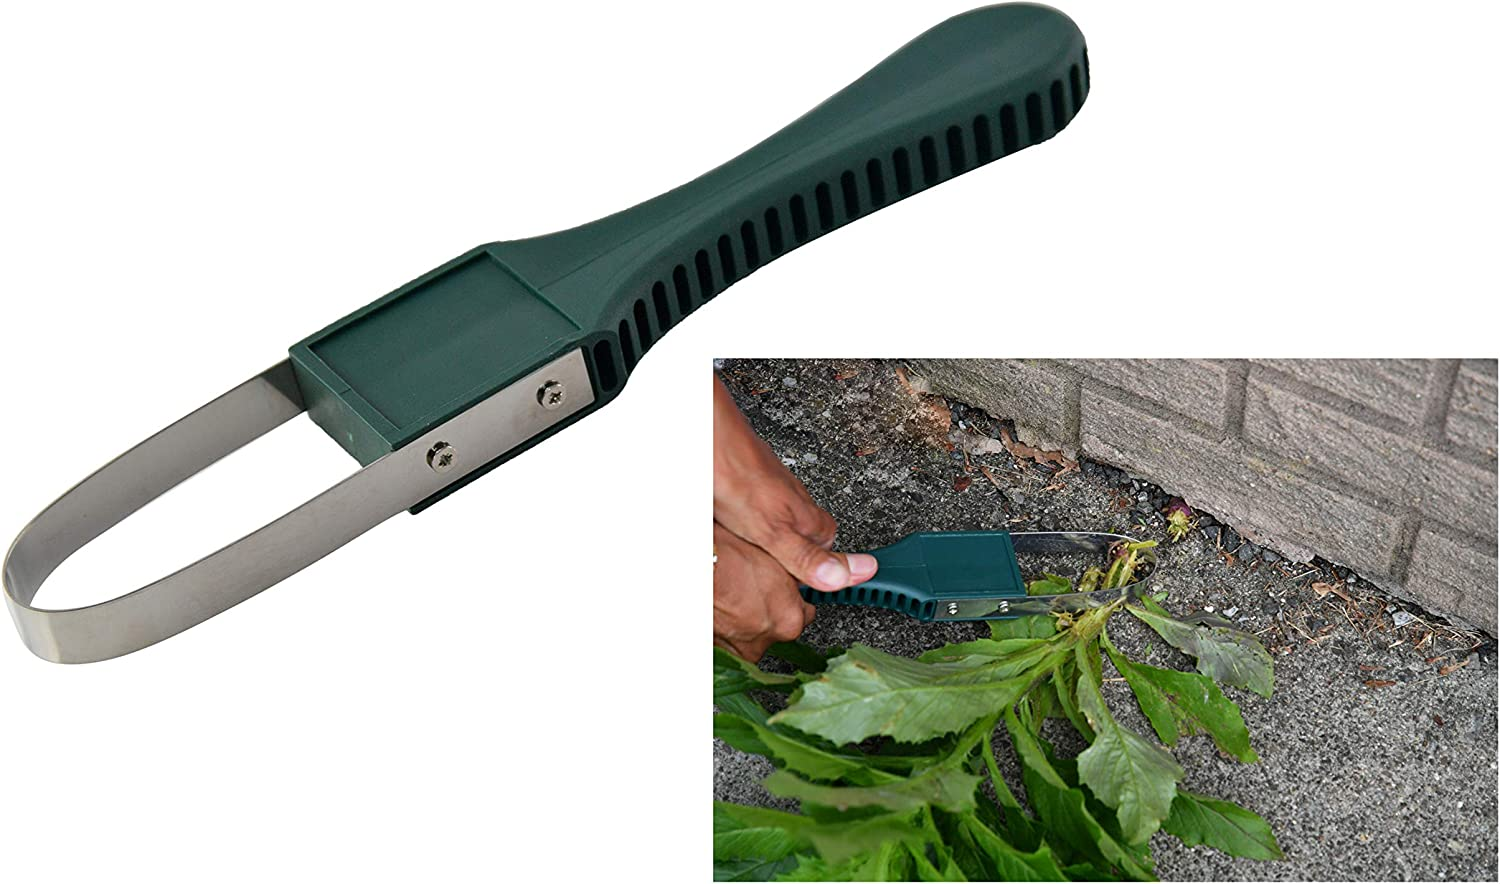 Home-X Weeding Tool for Gardening and Yard Work, Weed Cutter/Remover, Garden Accessory